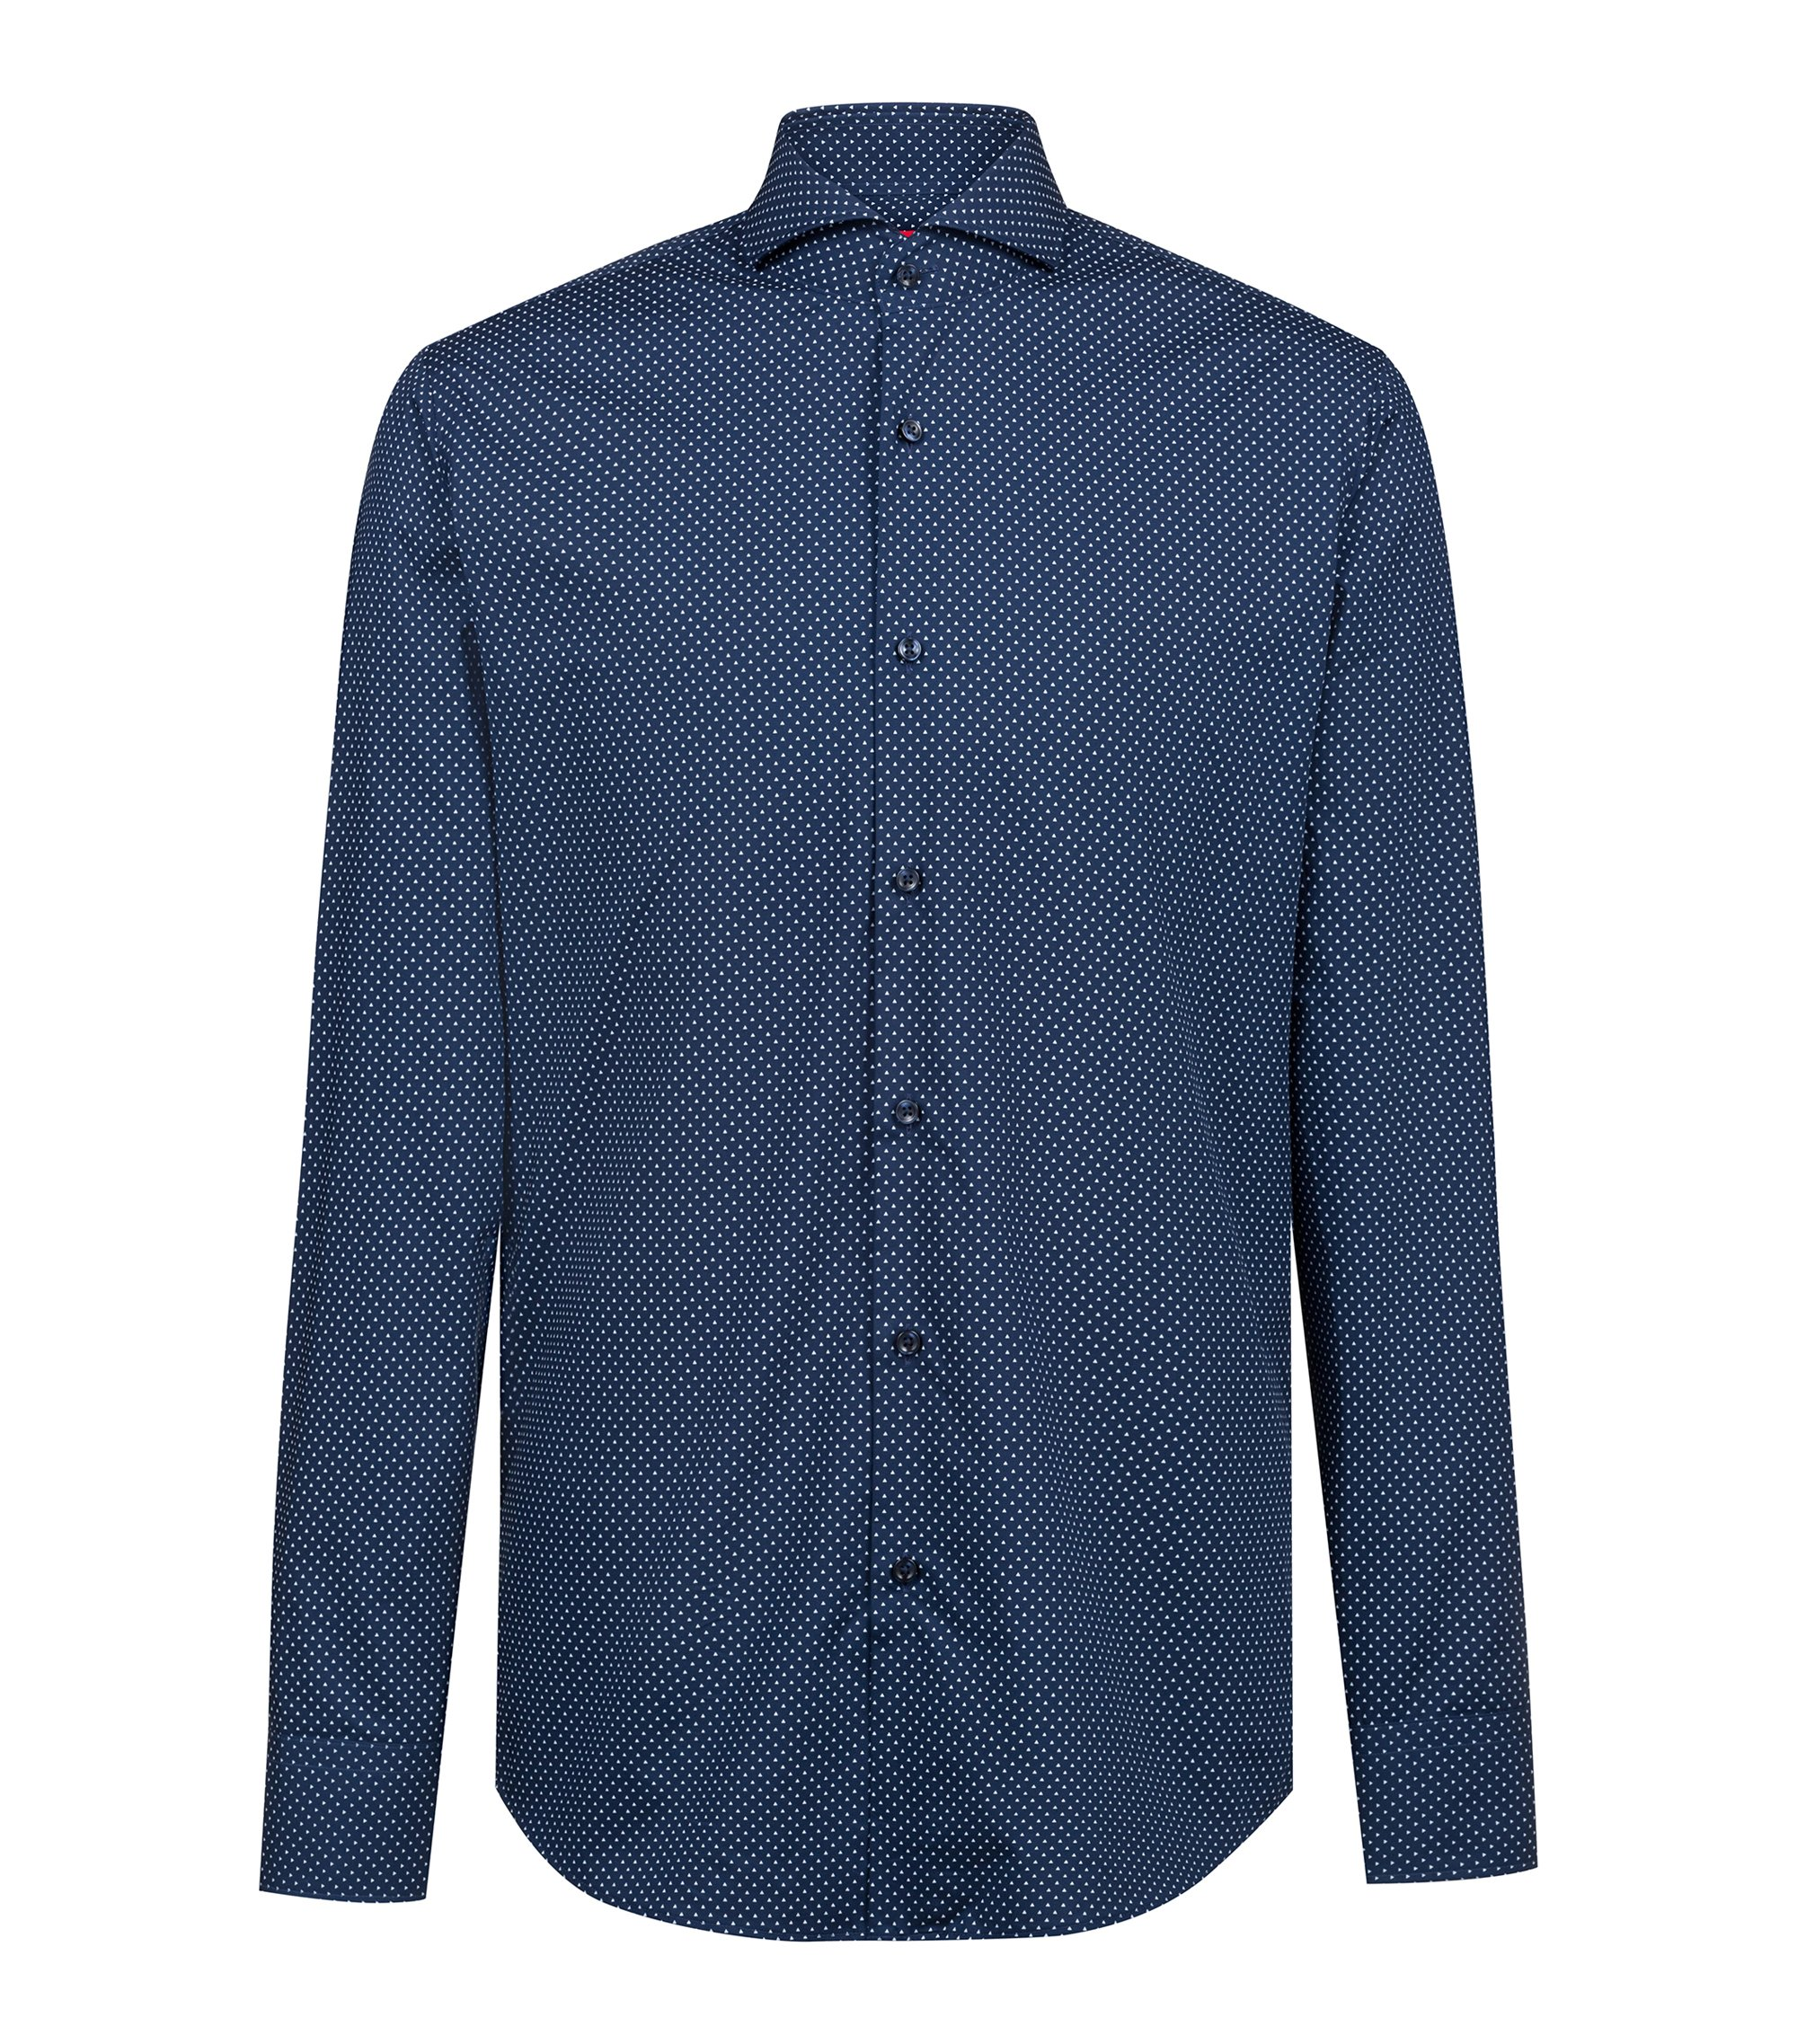 Camicia regular fit in cotone stampato con colletto alla francese, Blu scuro